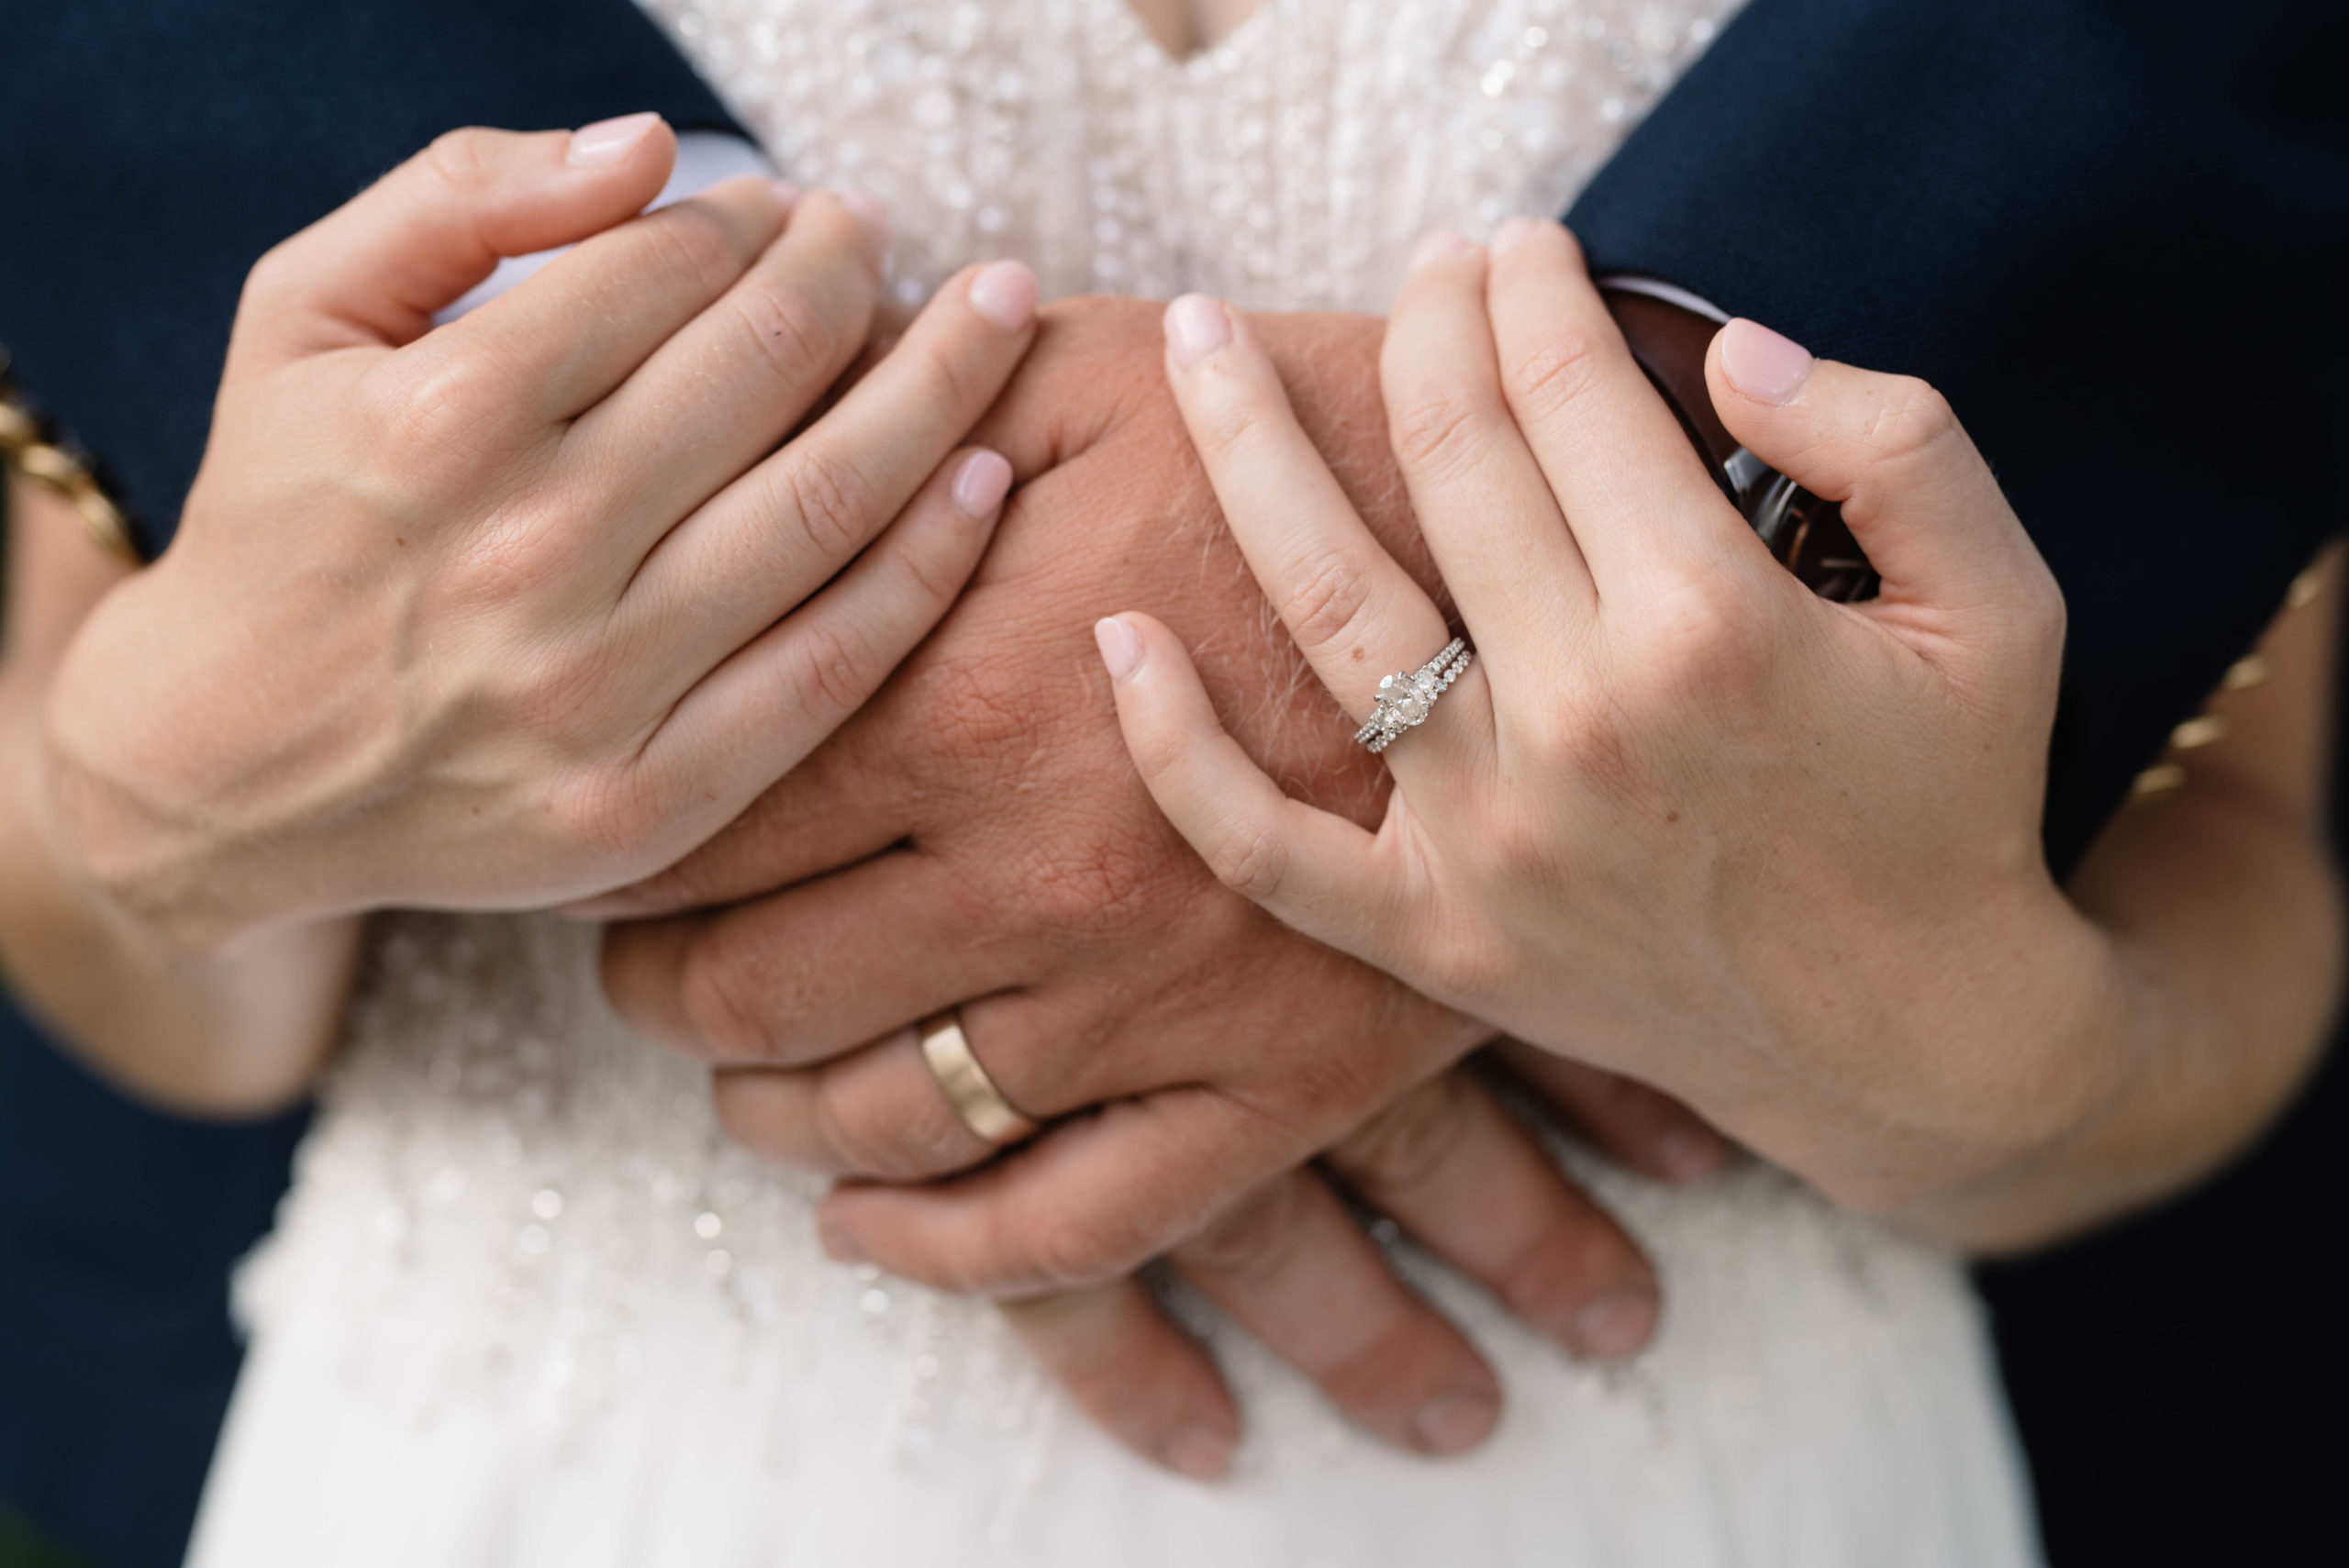 close up of bride and groom hands with wedding rings schafer century barn wedding venue